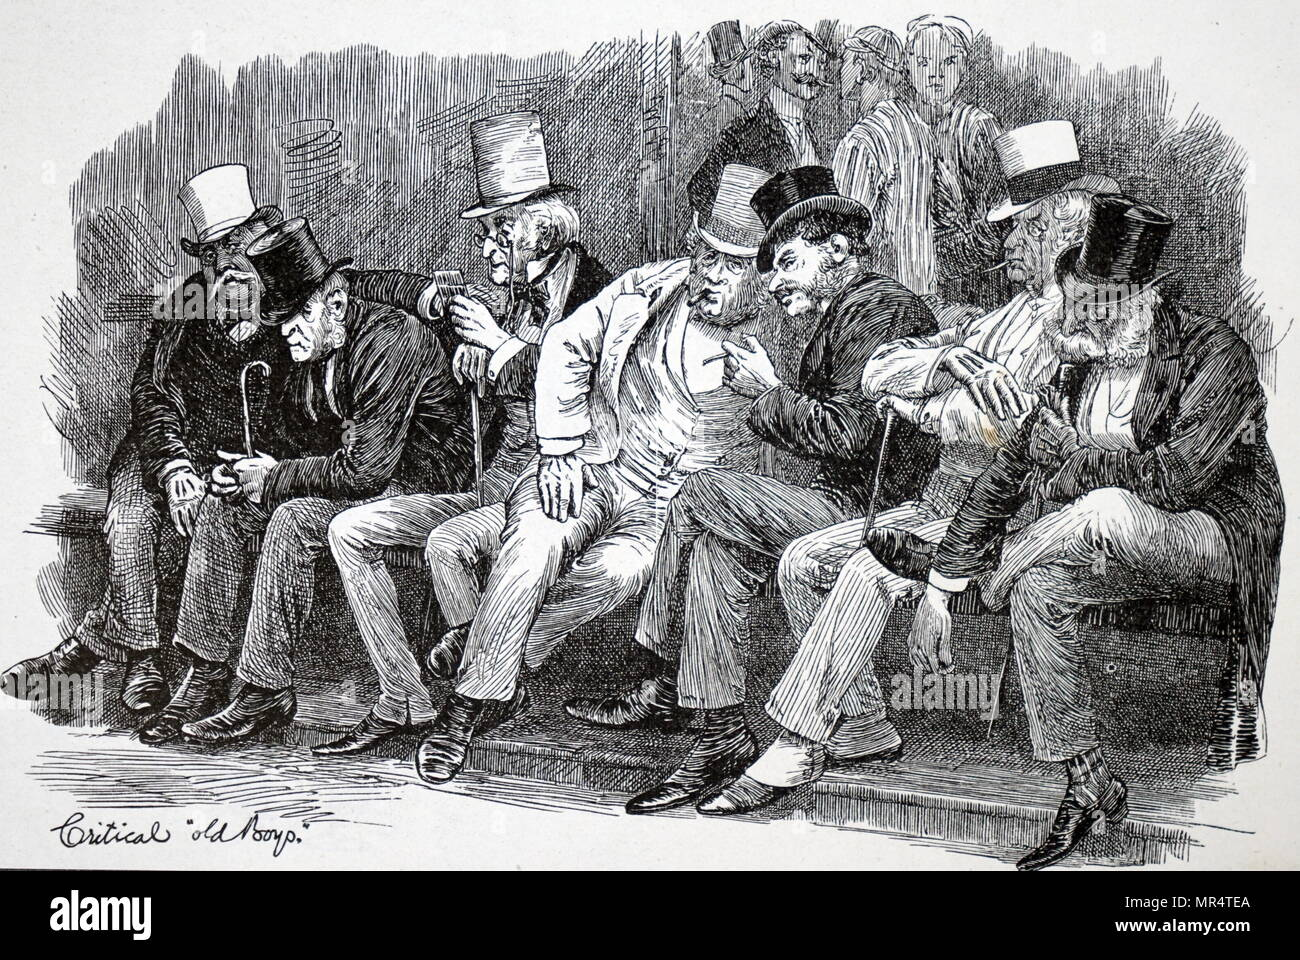 Engraving depicting spectators at the Eton and Harrow cricket match. Dated 19th century - Stock Image